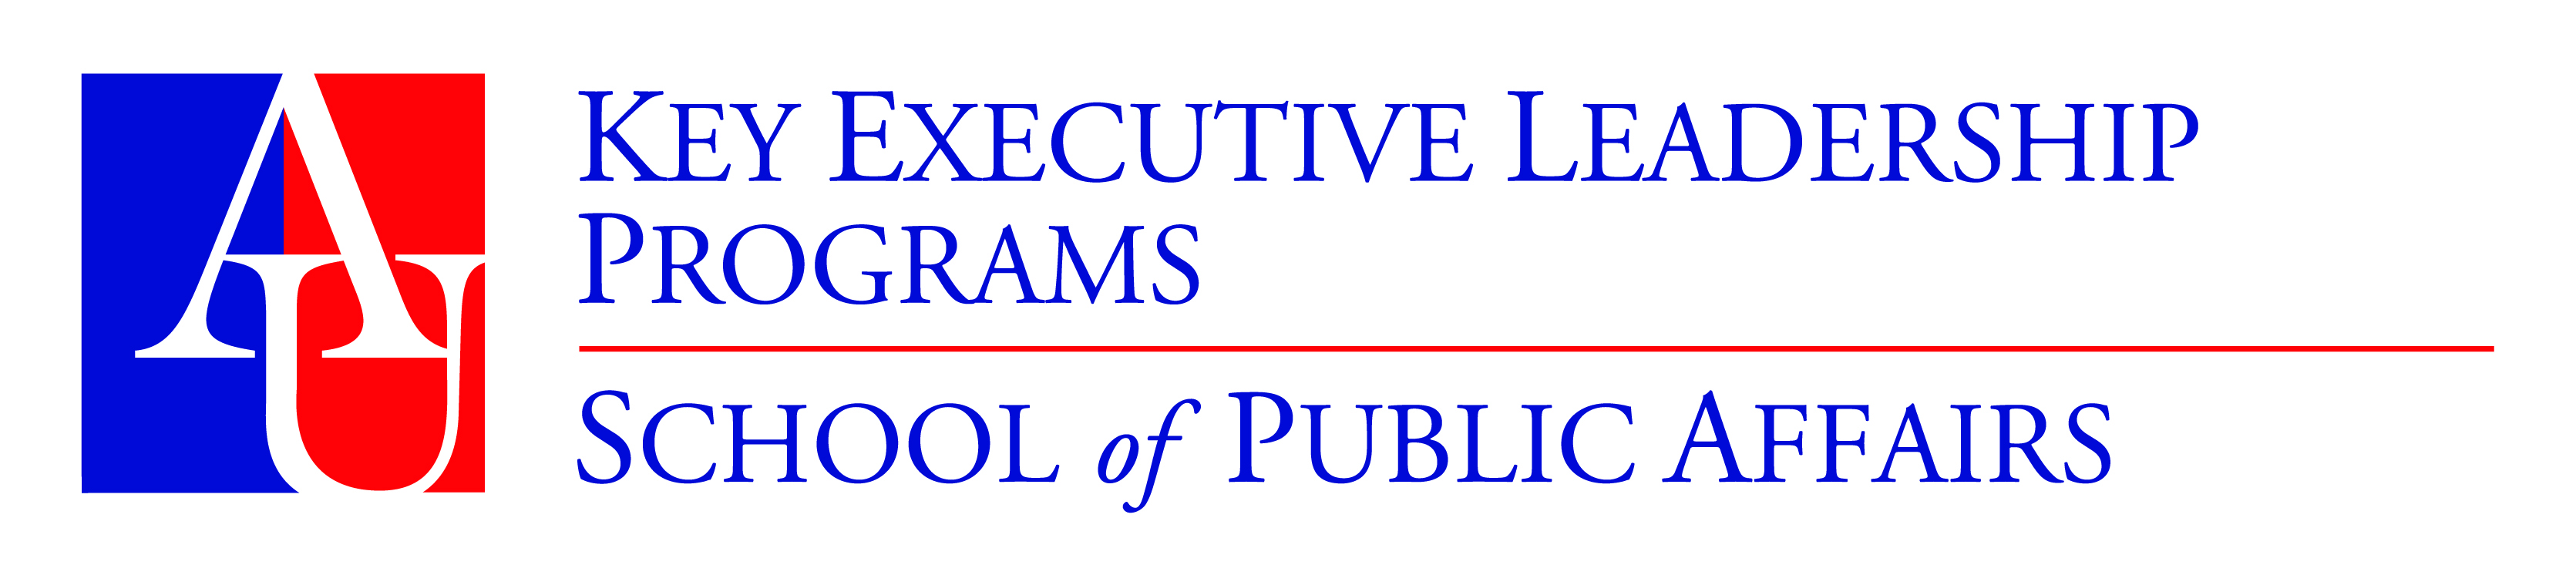 Key Executive Leadership Programs logo